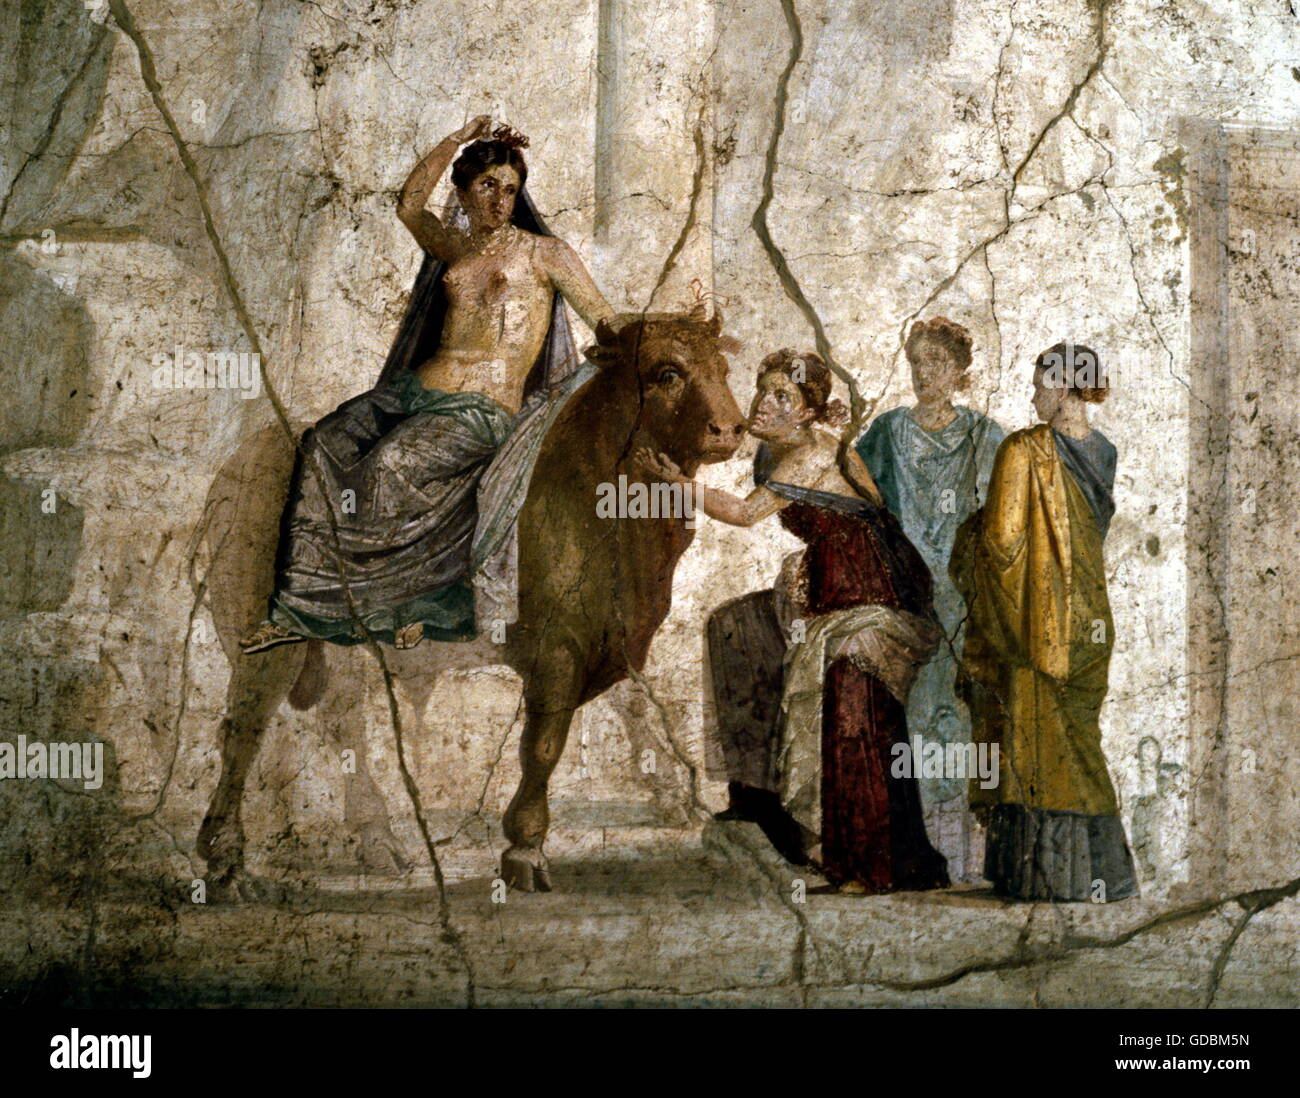 Europe abducted by zeus 1st century ad stock photo royalty free europe abducted by zeus 1st century ad publicscrutiny Image collections